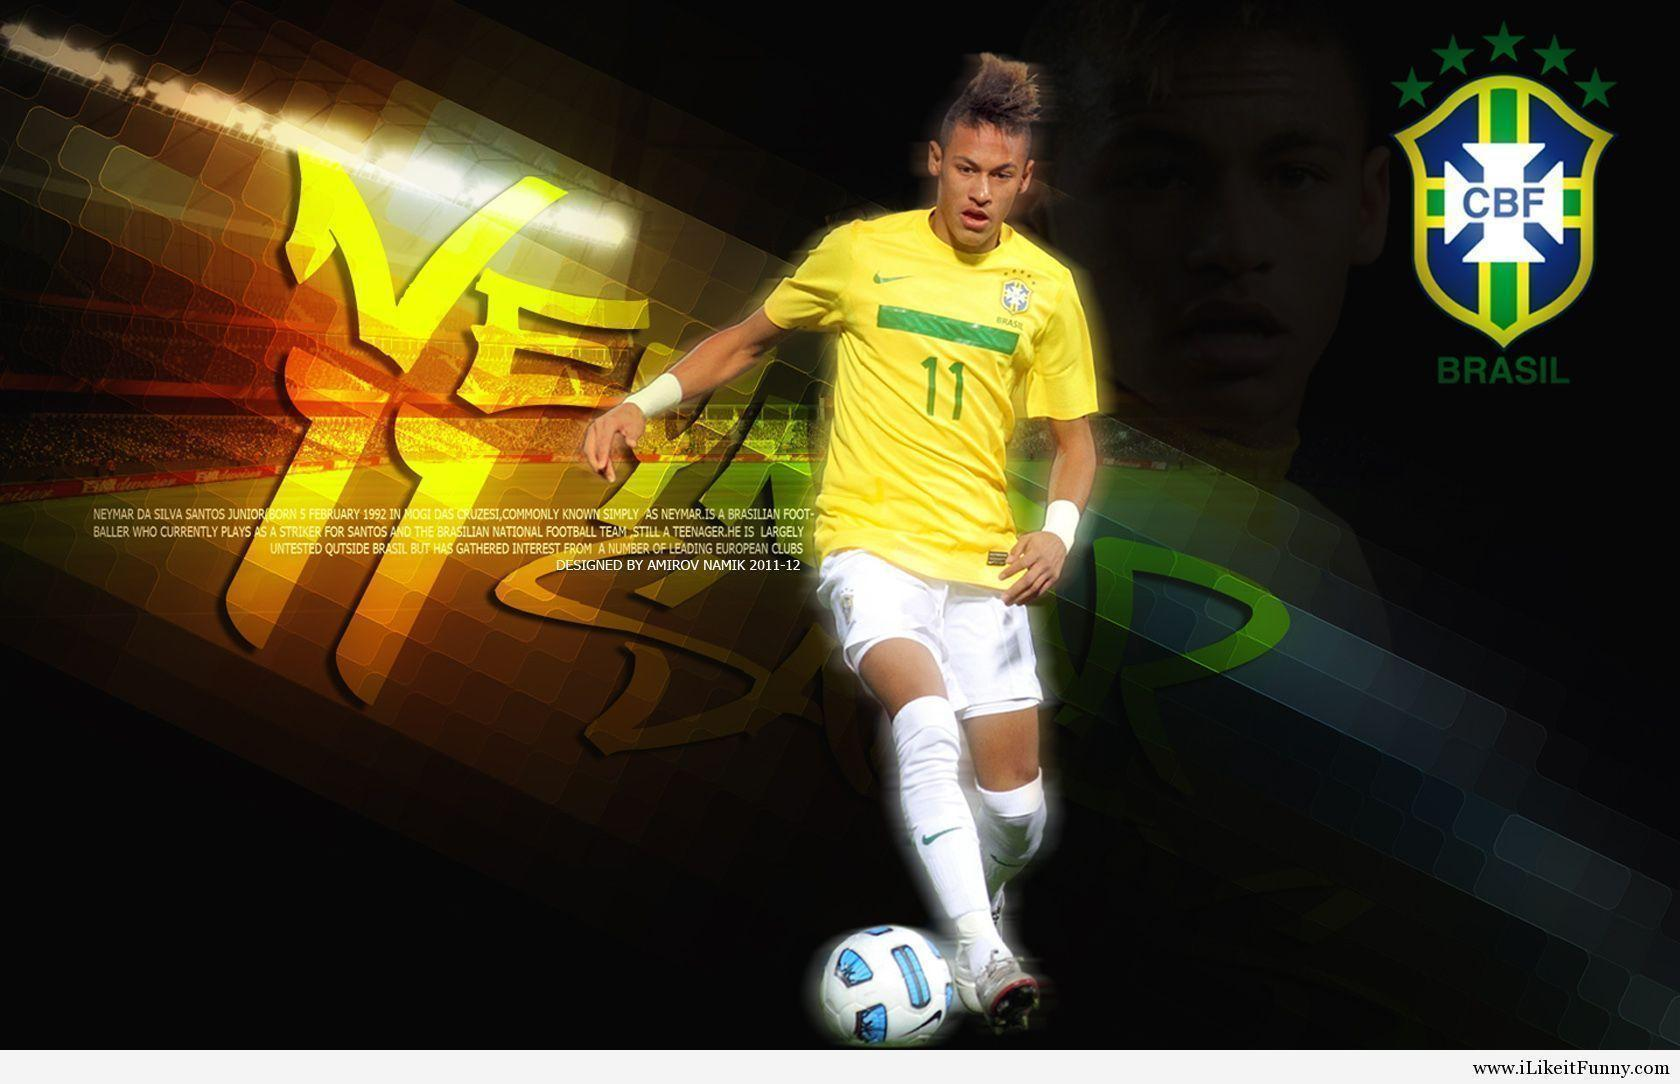 neymar backgrounds brazil flag 2015 - wallpaper cave